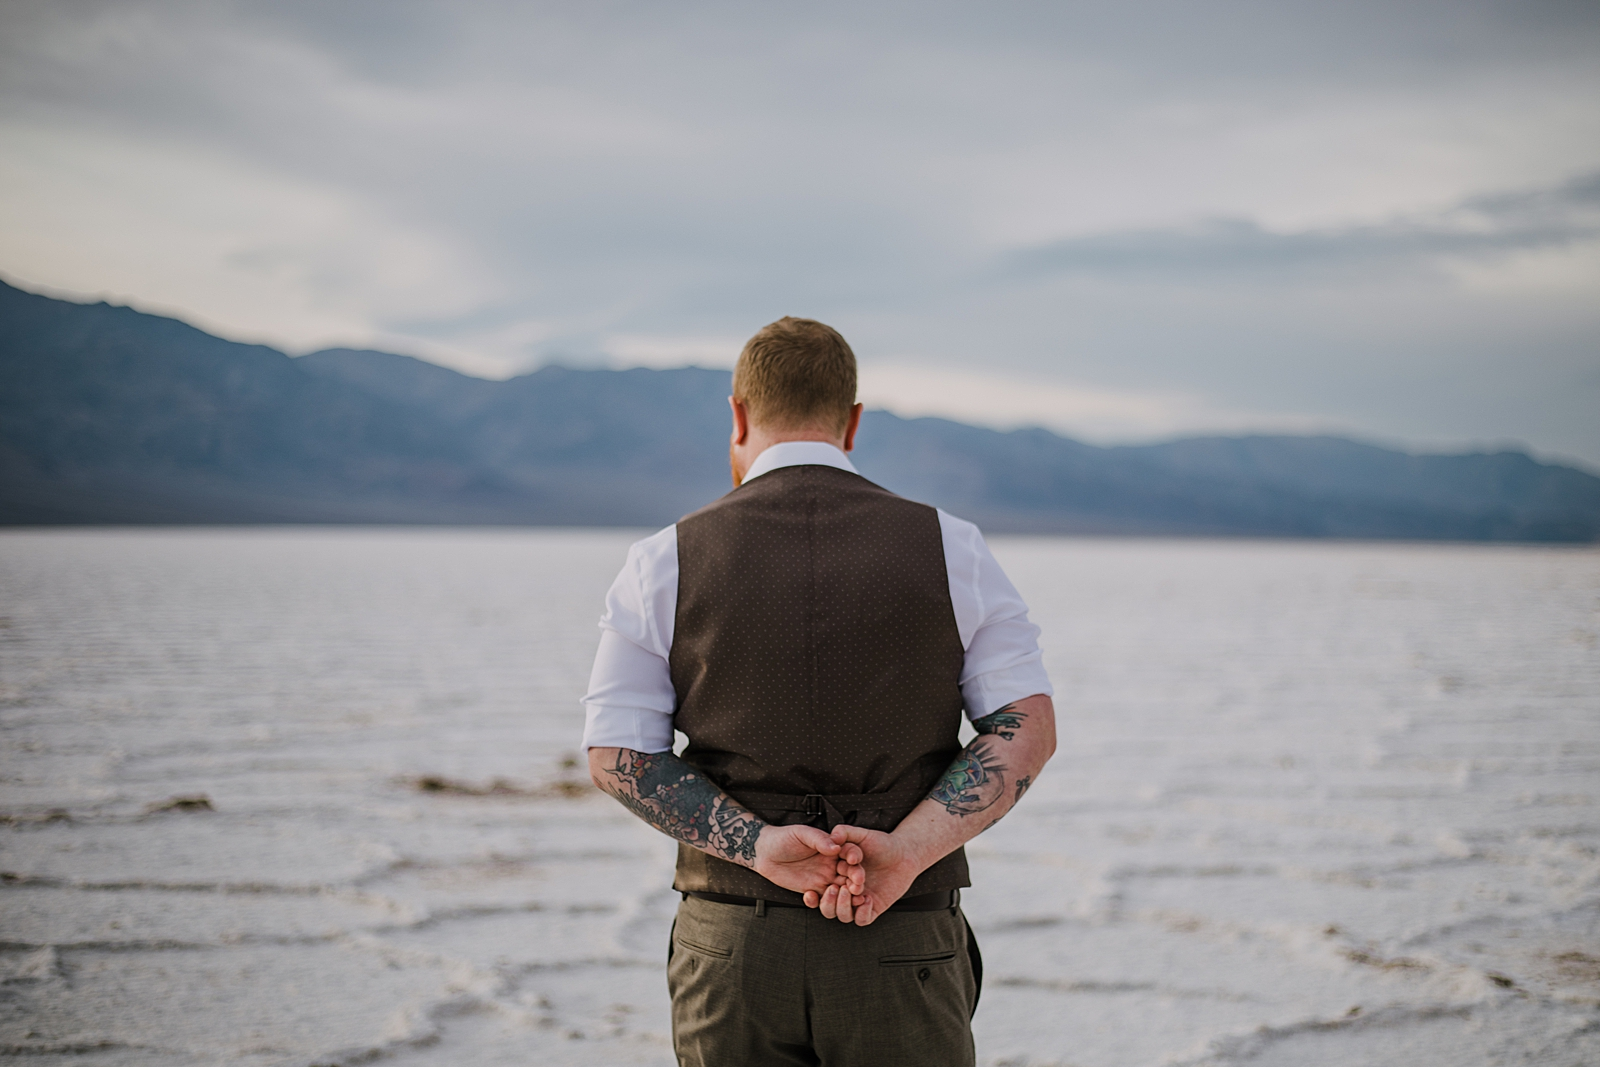 groom on the salt flats, death valley national park elopement, elope in death valley, badwater basin elopement, hiking in death valley national park, sunset at badwater basin